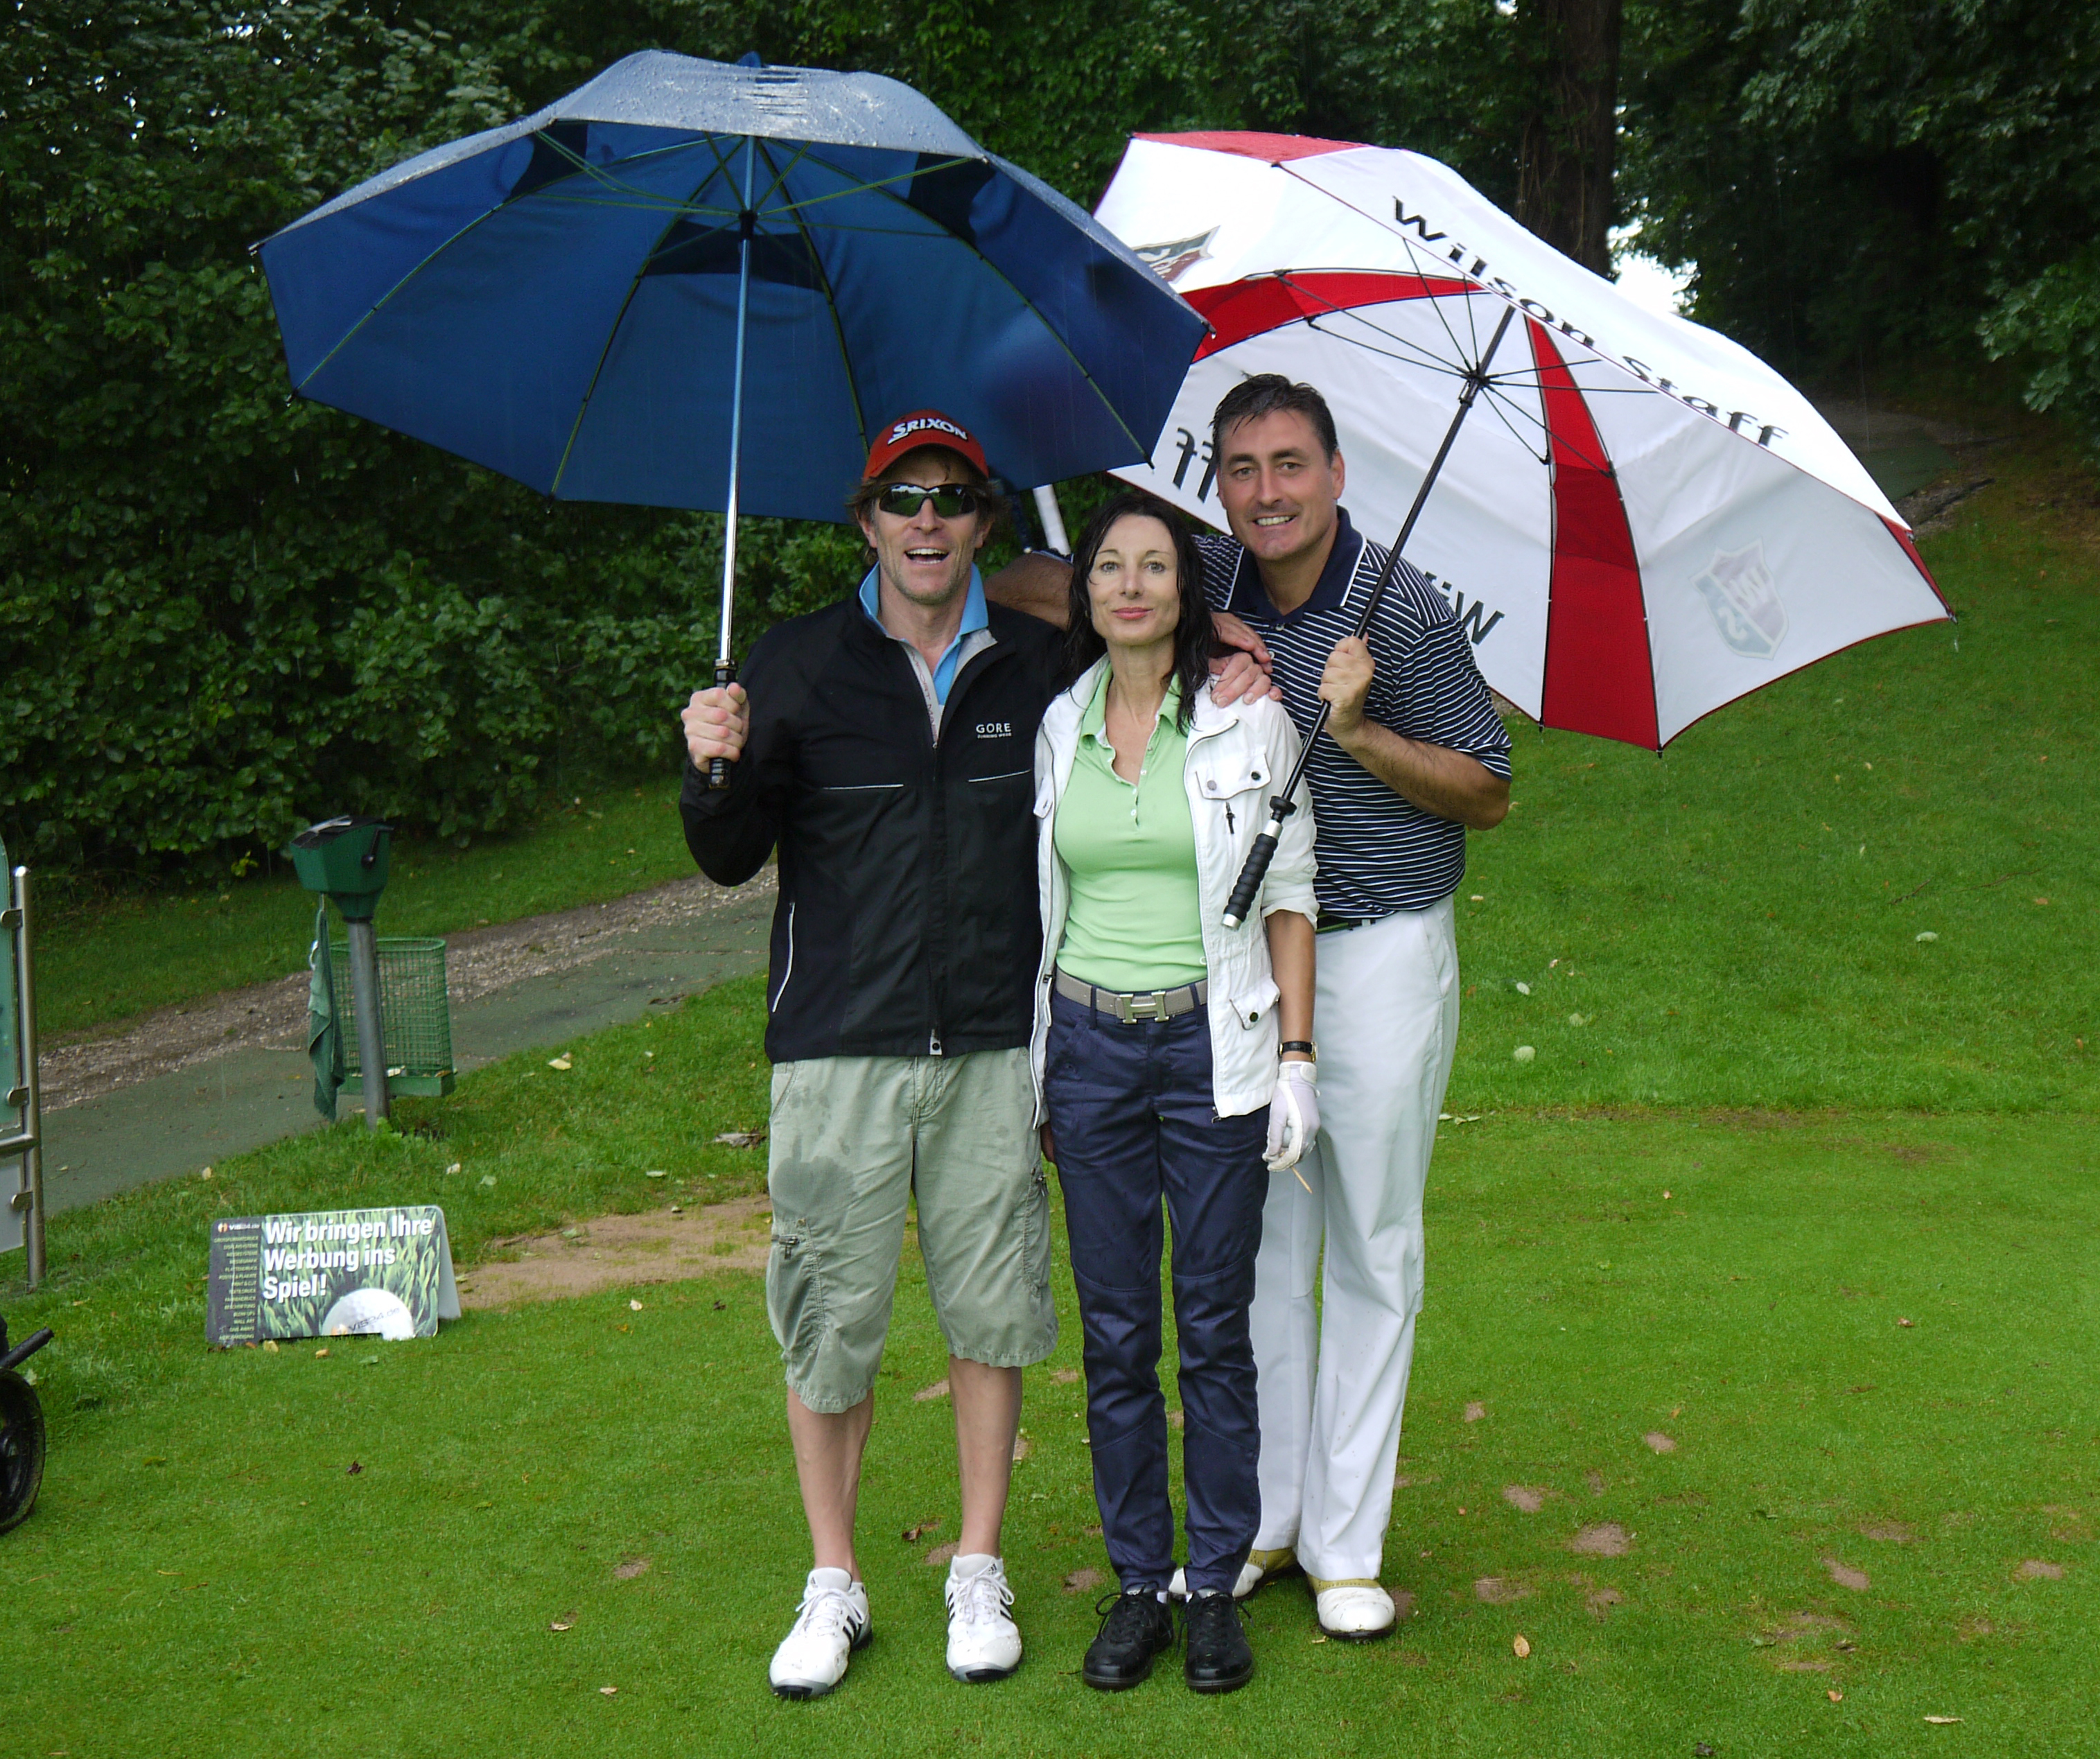 ceo-golfers-world-challenge-2010-21